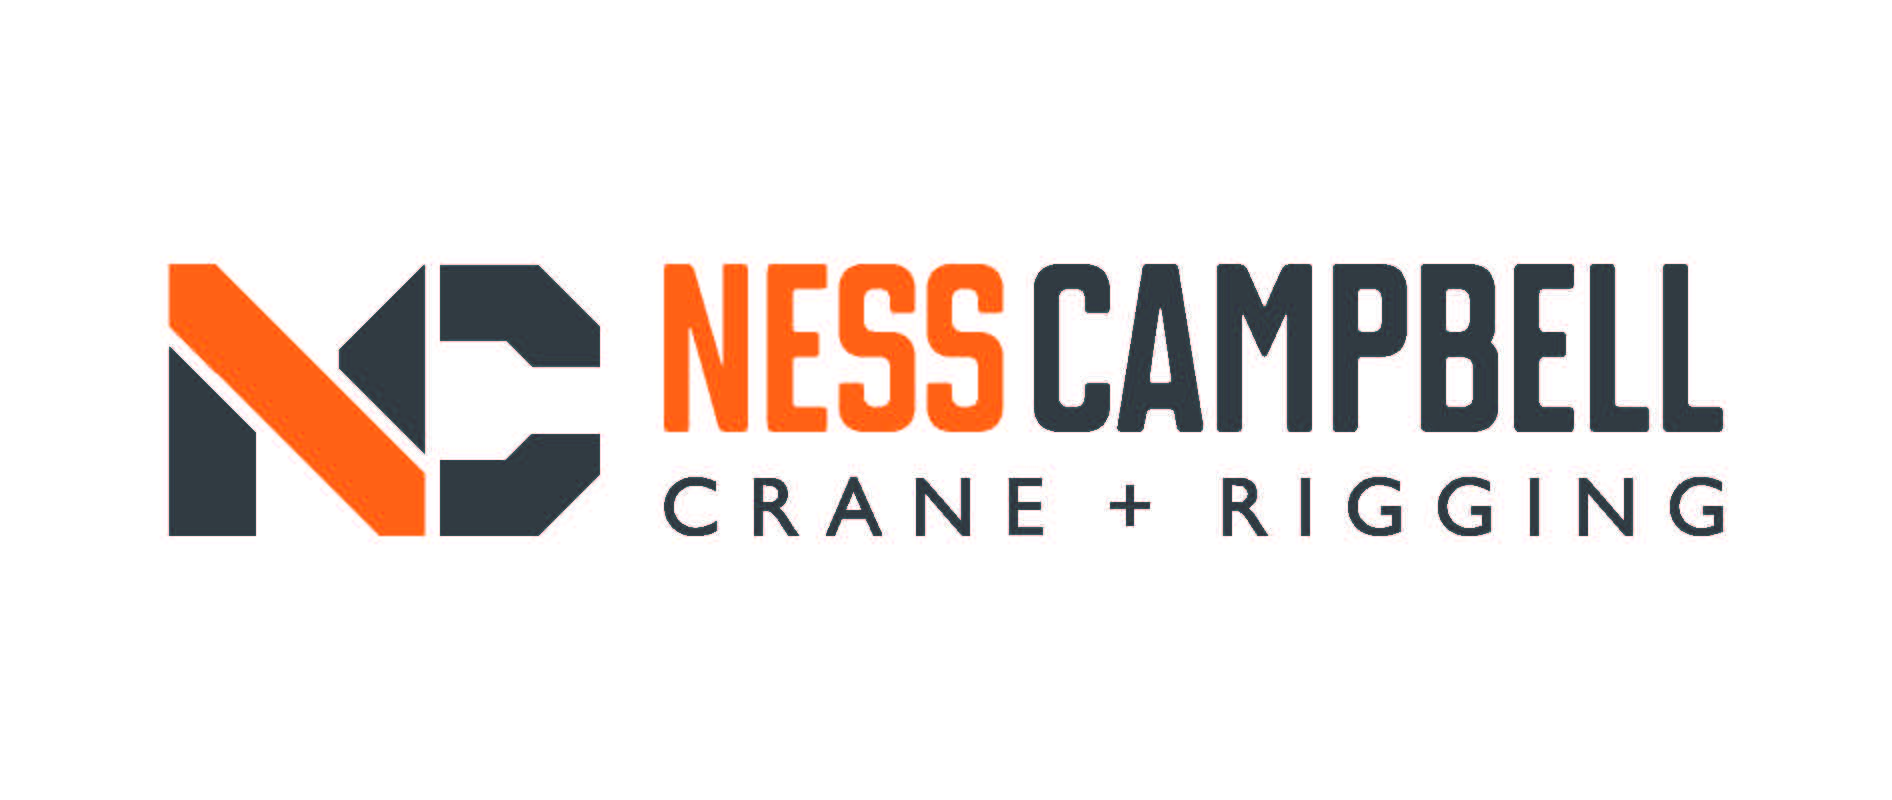 Ness & Campbell Crane, Inc.